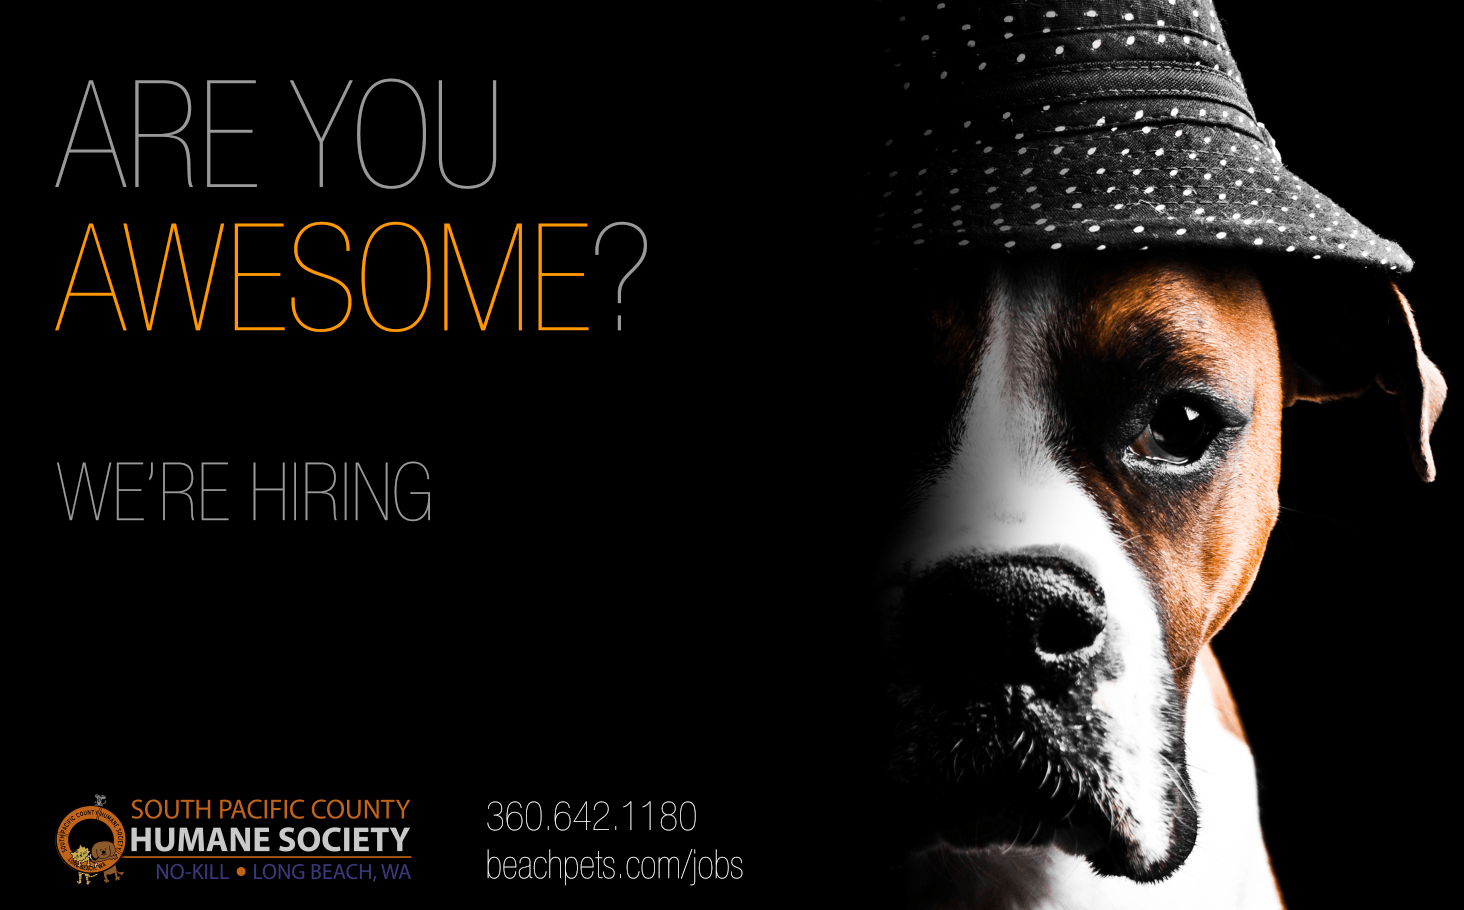 WERE HIRING South Pacific County Humane Society